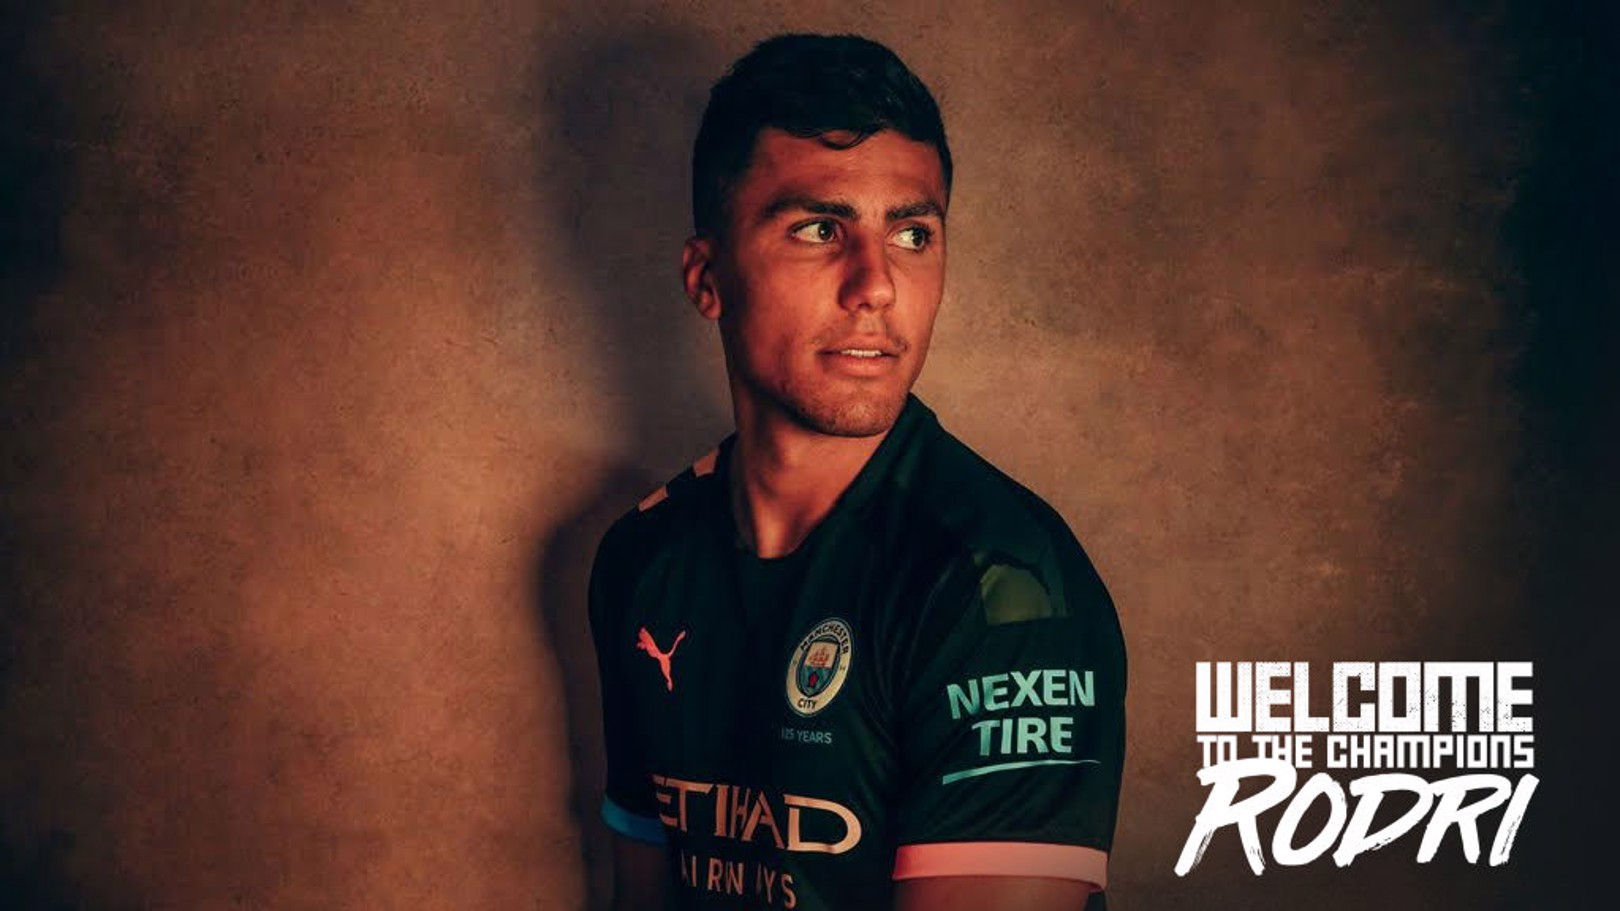 MEET AND GREET: Come to the stadium Citystore to meet our new signing!